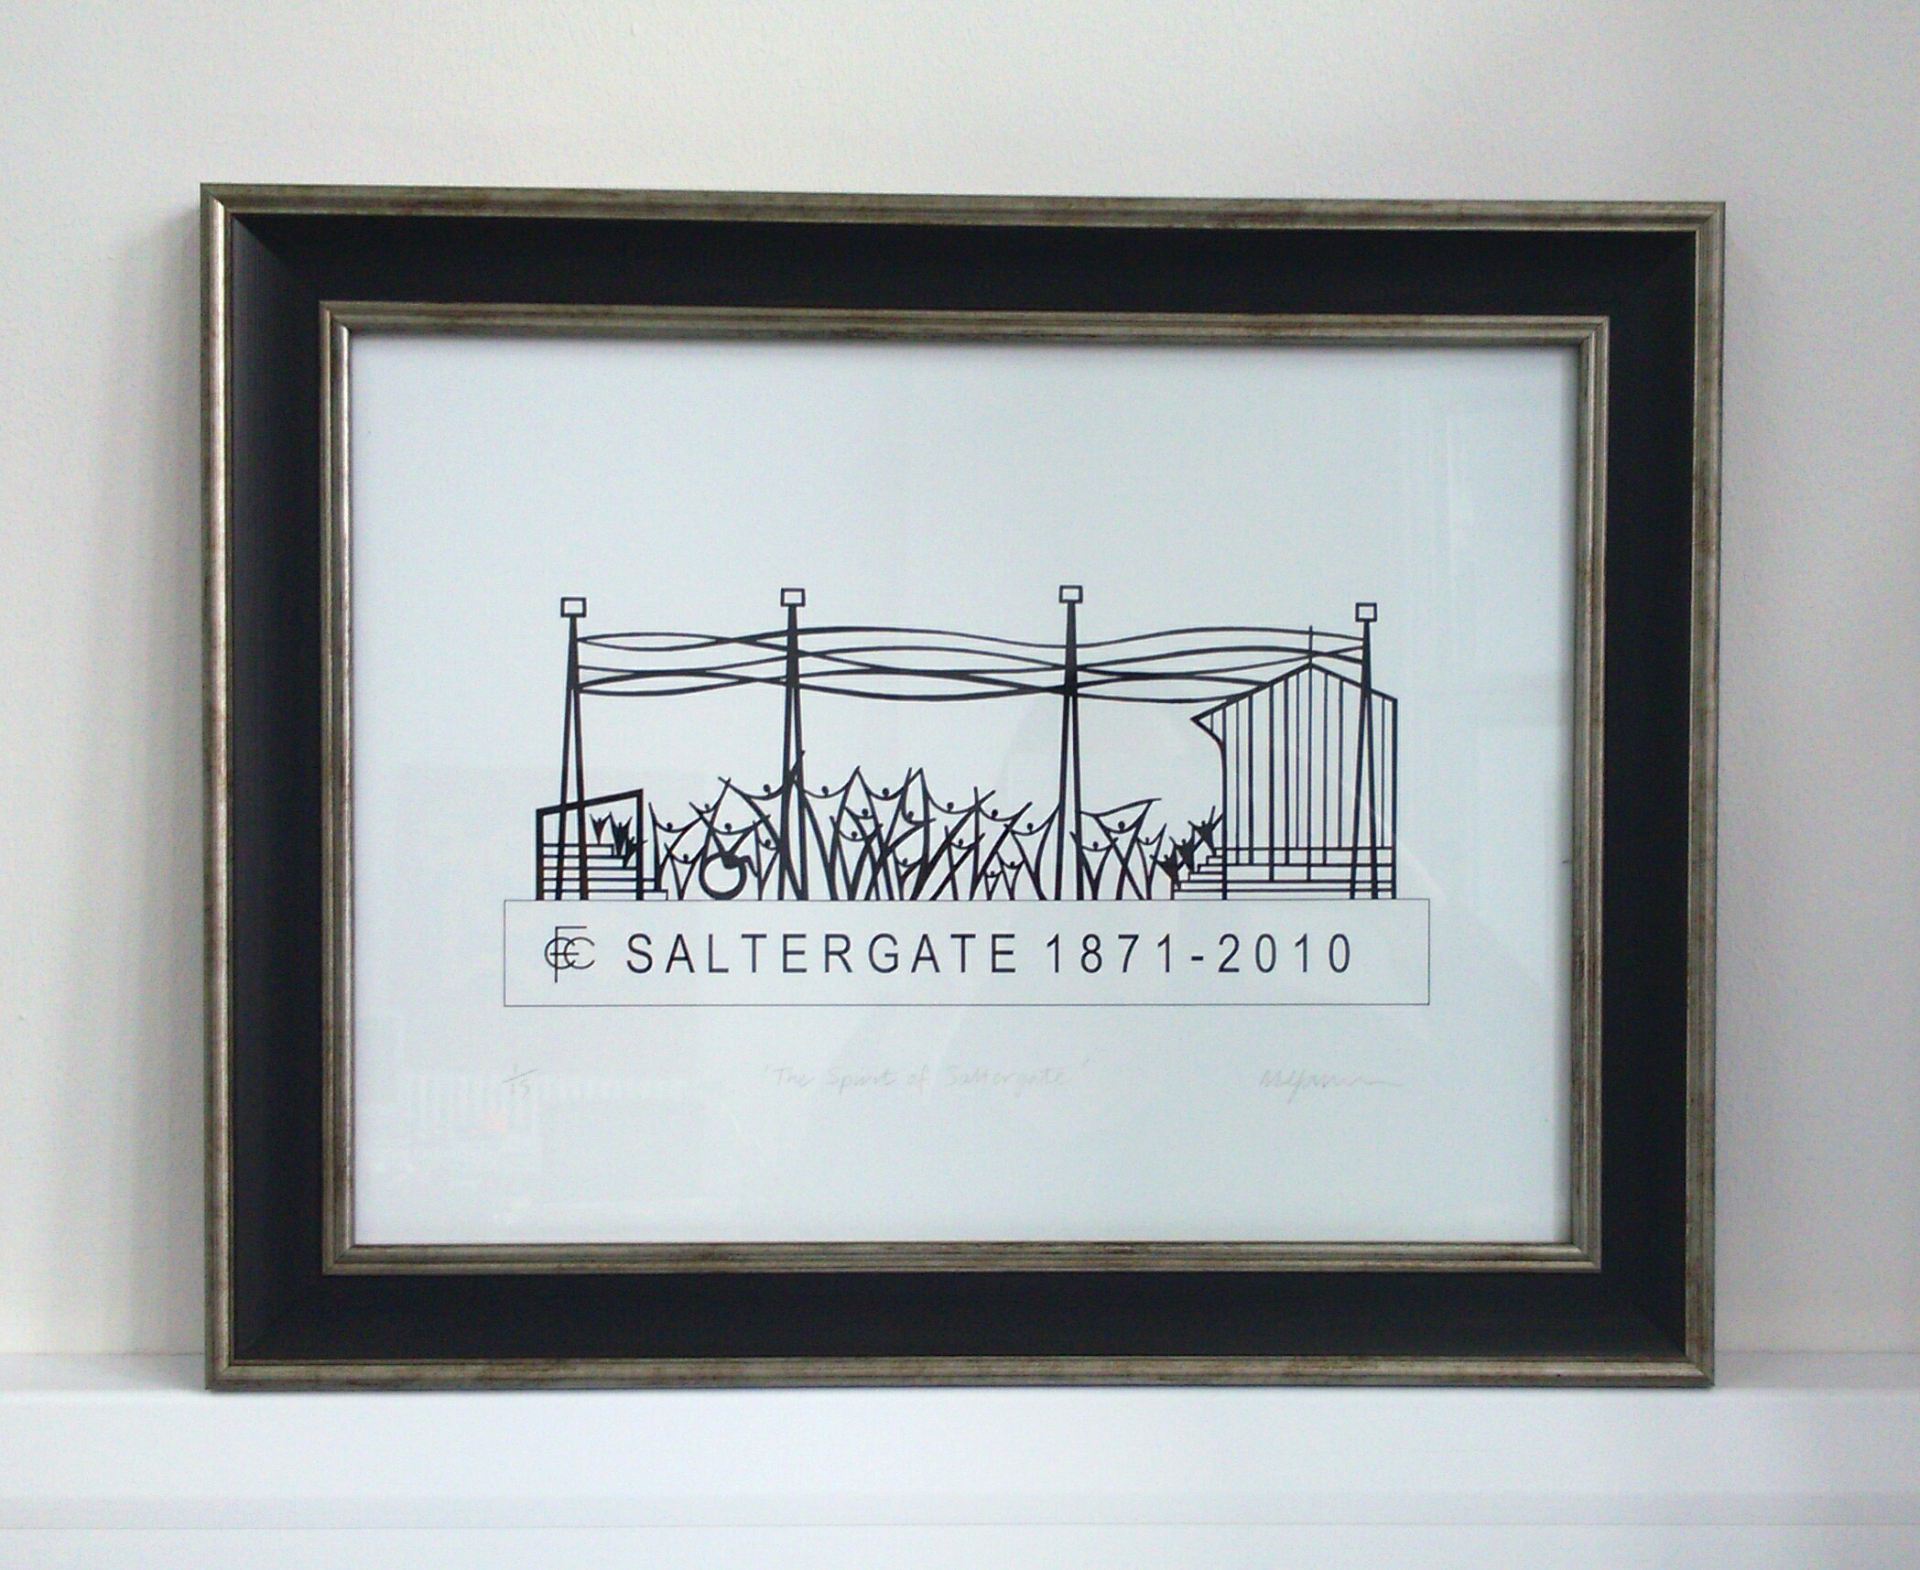 Spirit of Saltergate